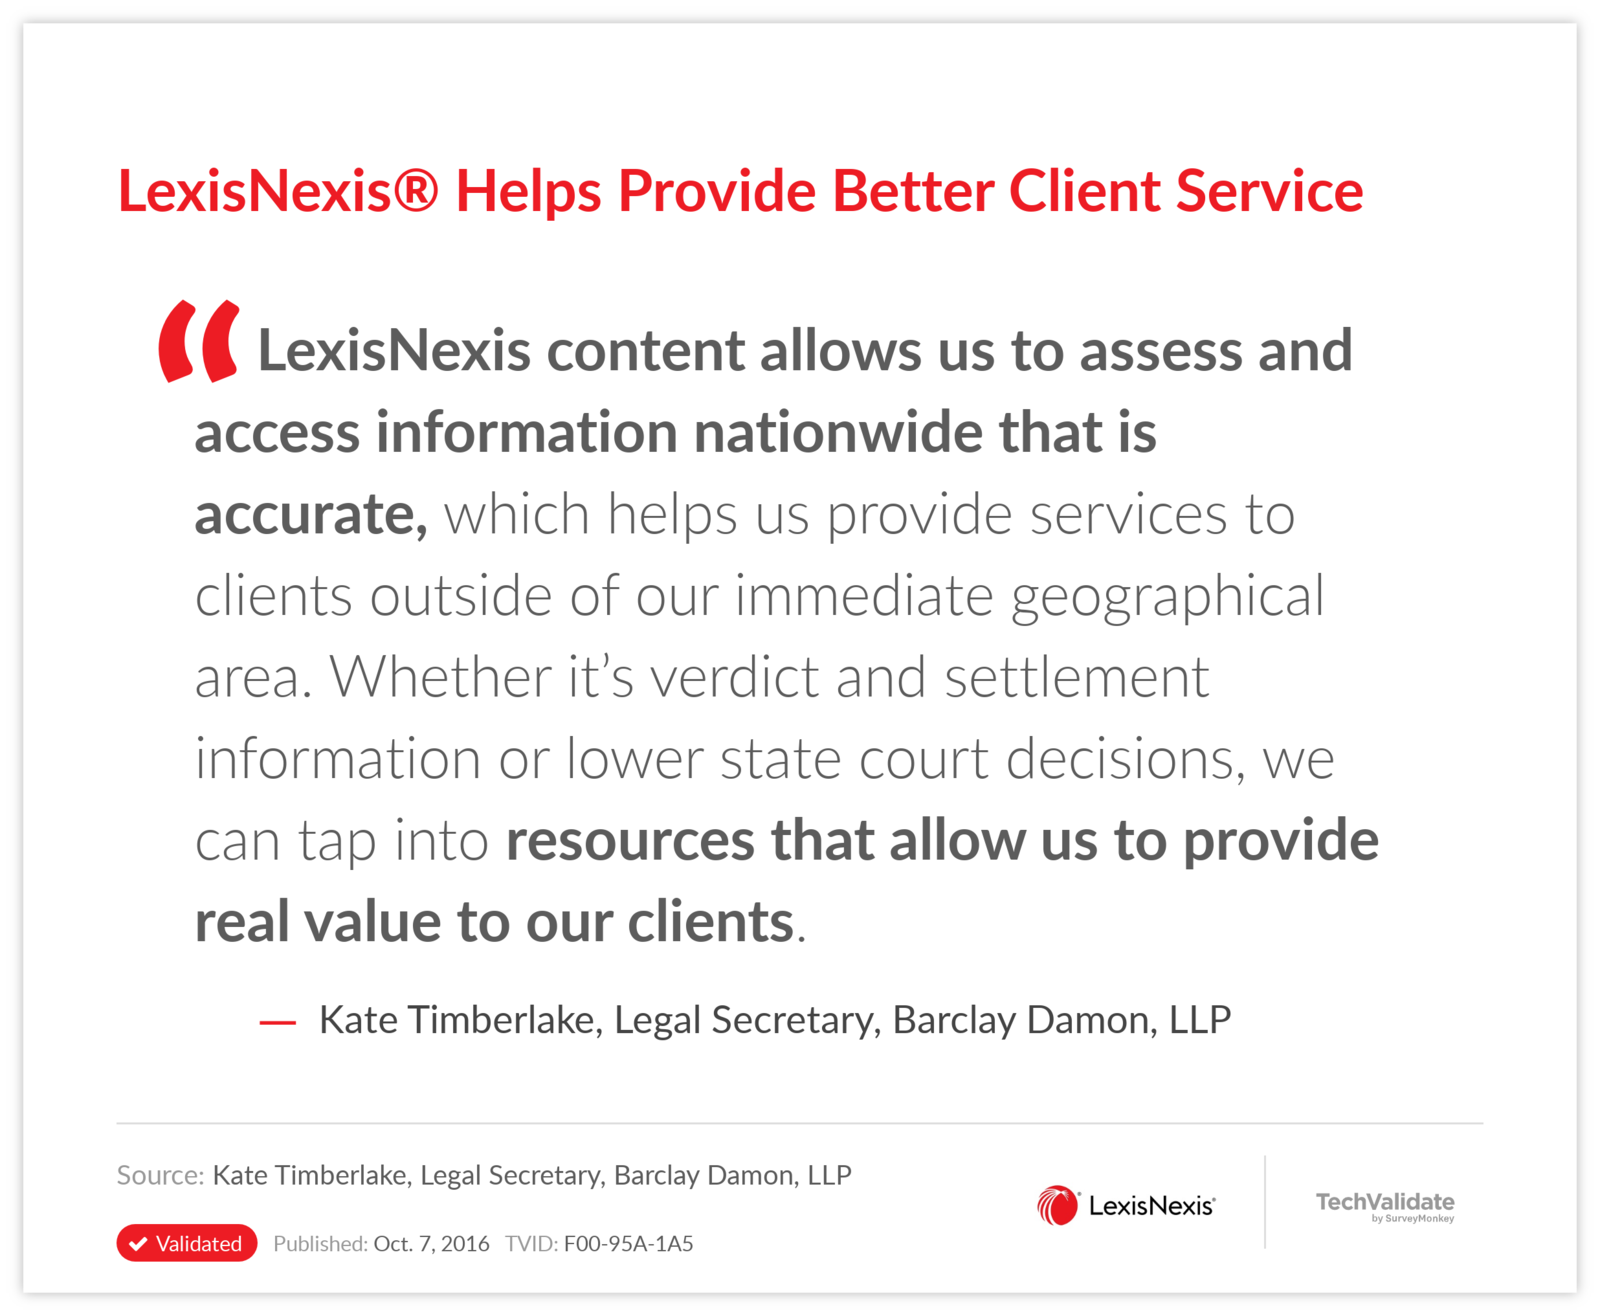 LexisNexis® Helps Provide Better Client Service